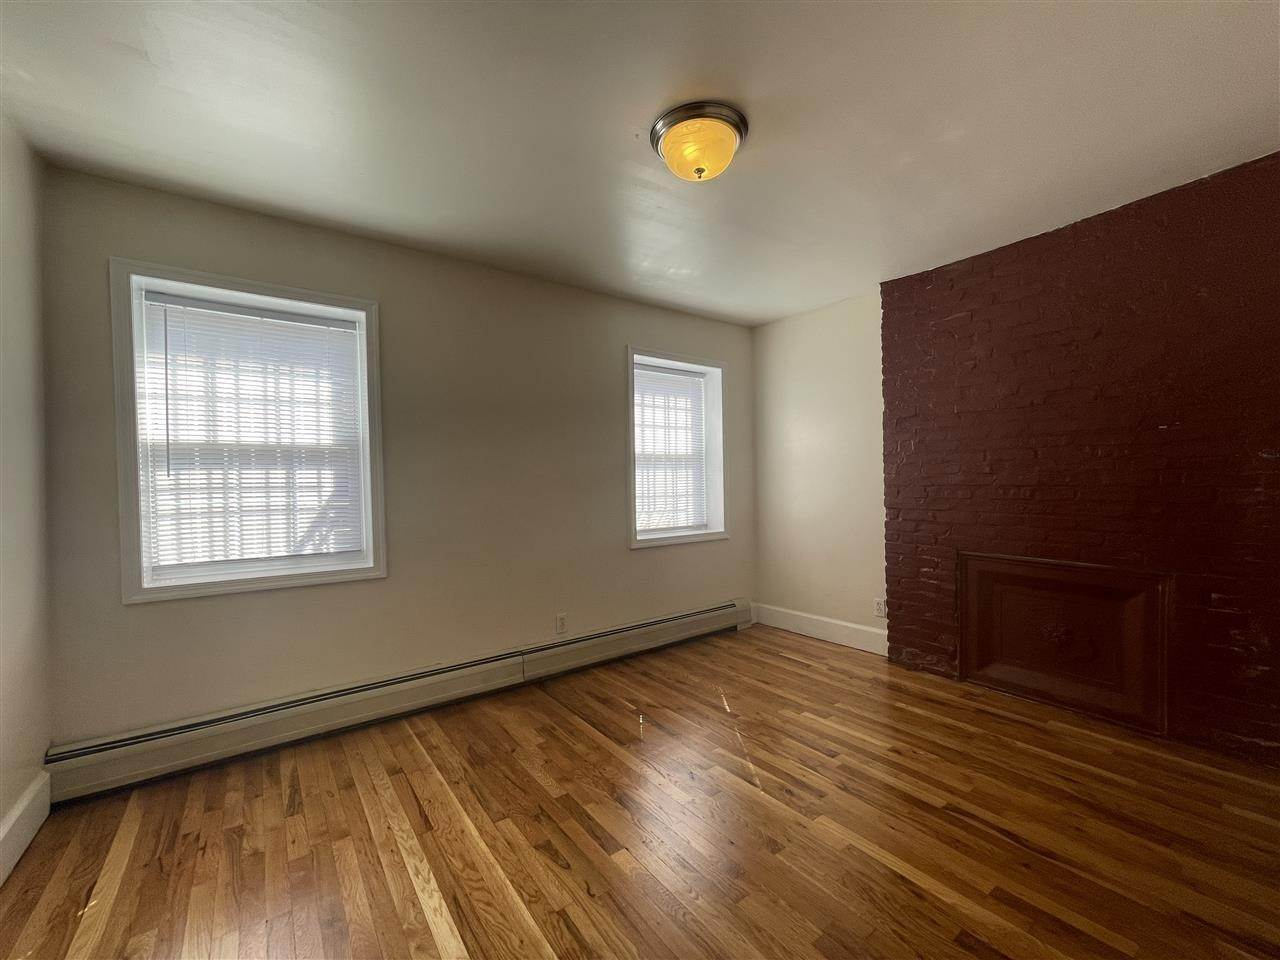 5. Single Family Home for Rent at 204 CHRISTOPHER COLUMBUS DRIVE #1 Jersey City, New Jersey, 07302 United States